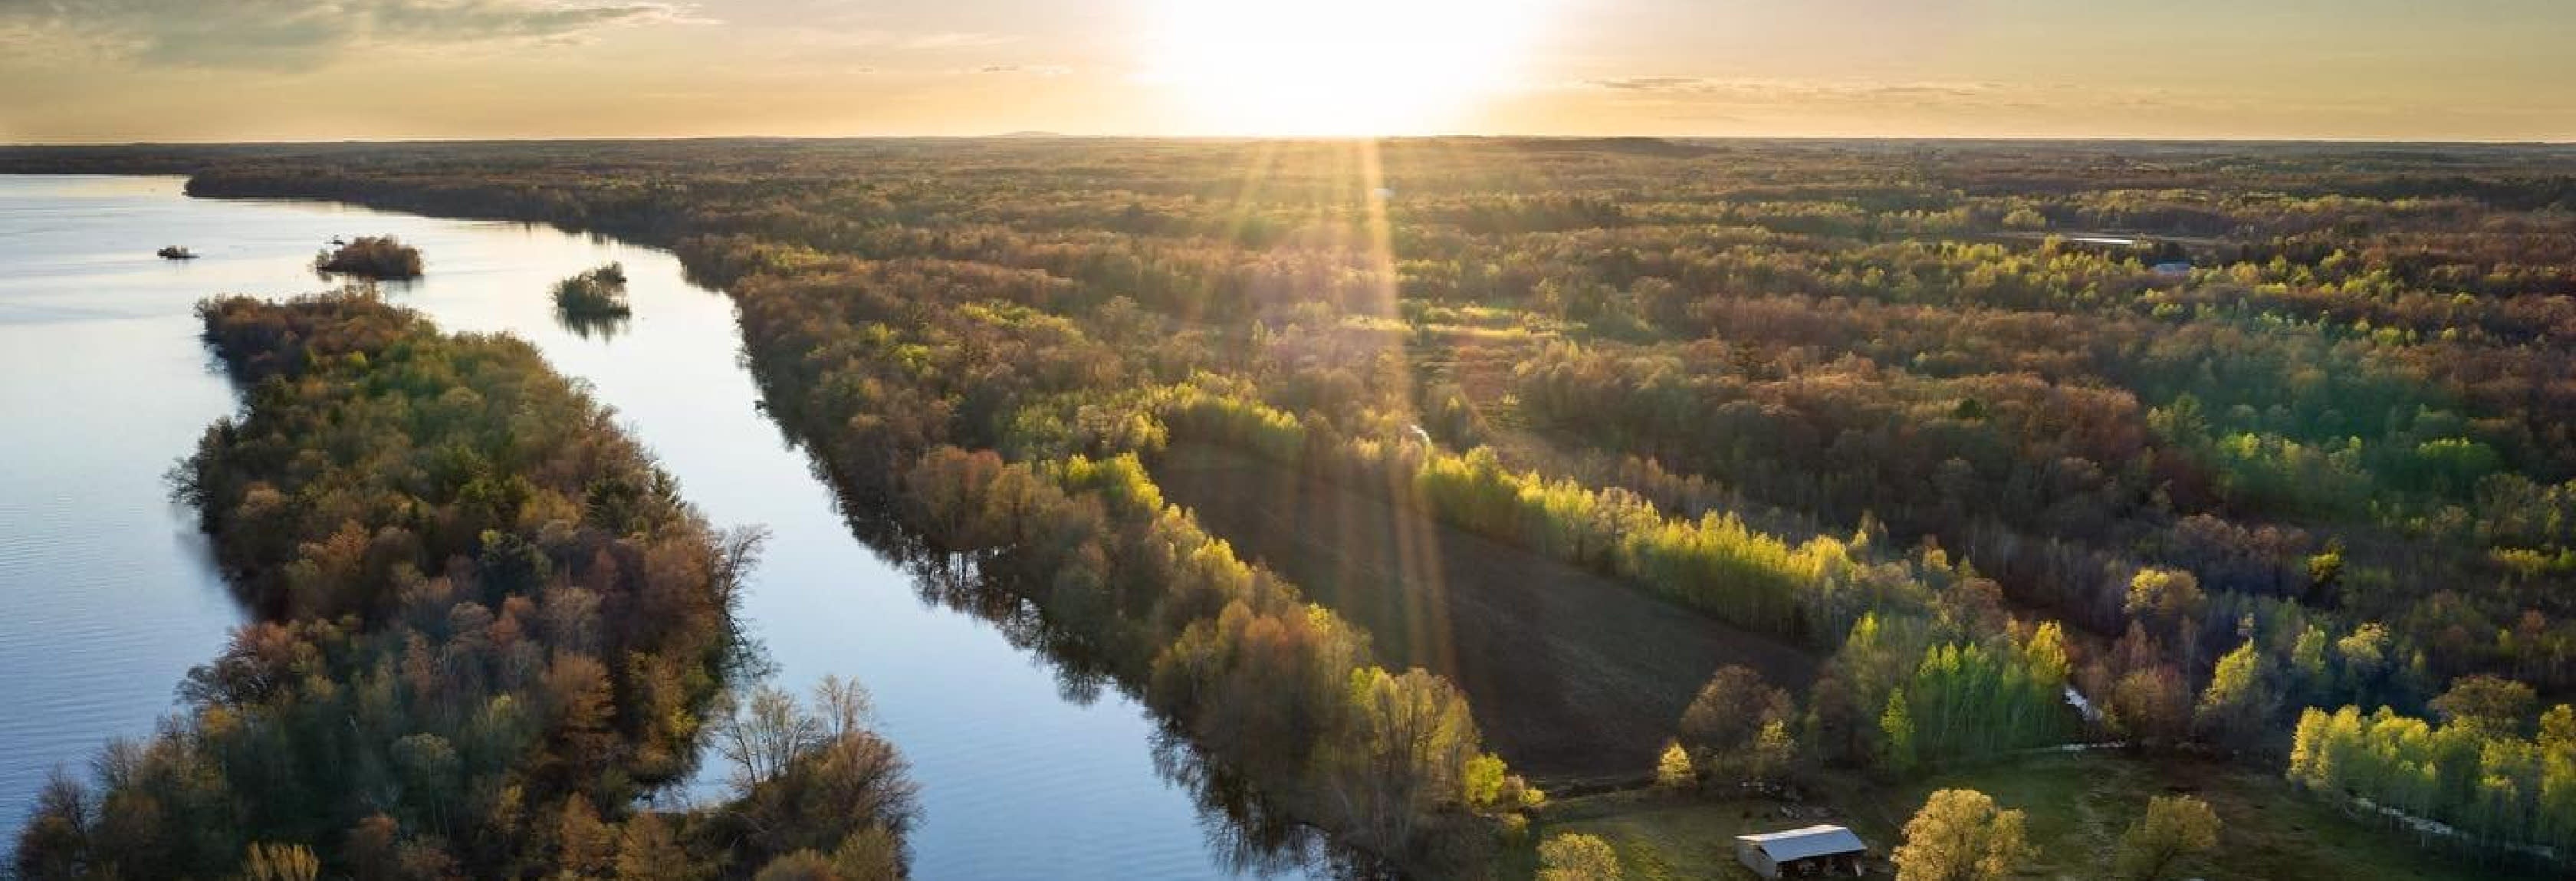 River, water, sunset, aerial, trees